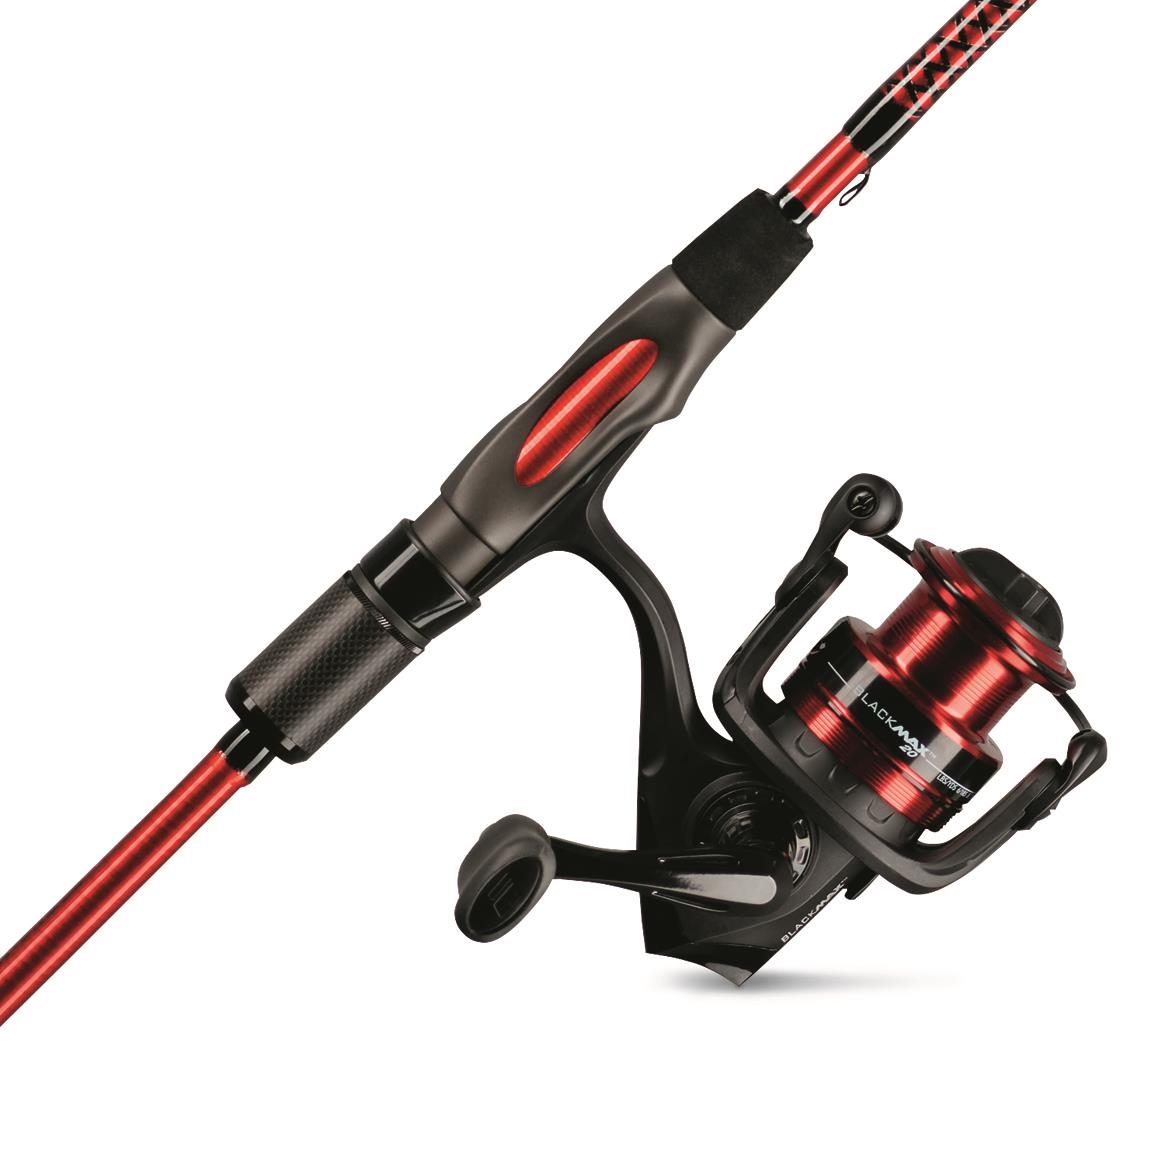 Ugly Stick Carbon Series Spinning Rod and Reel Combo